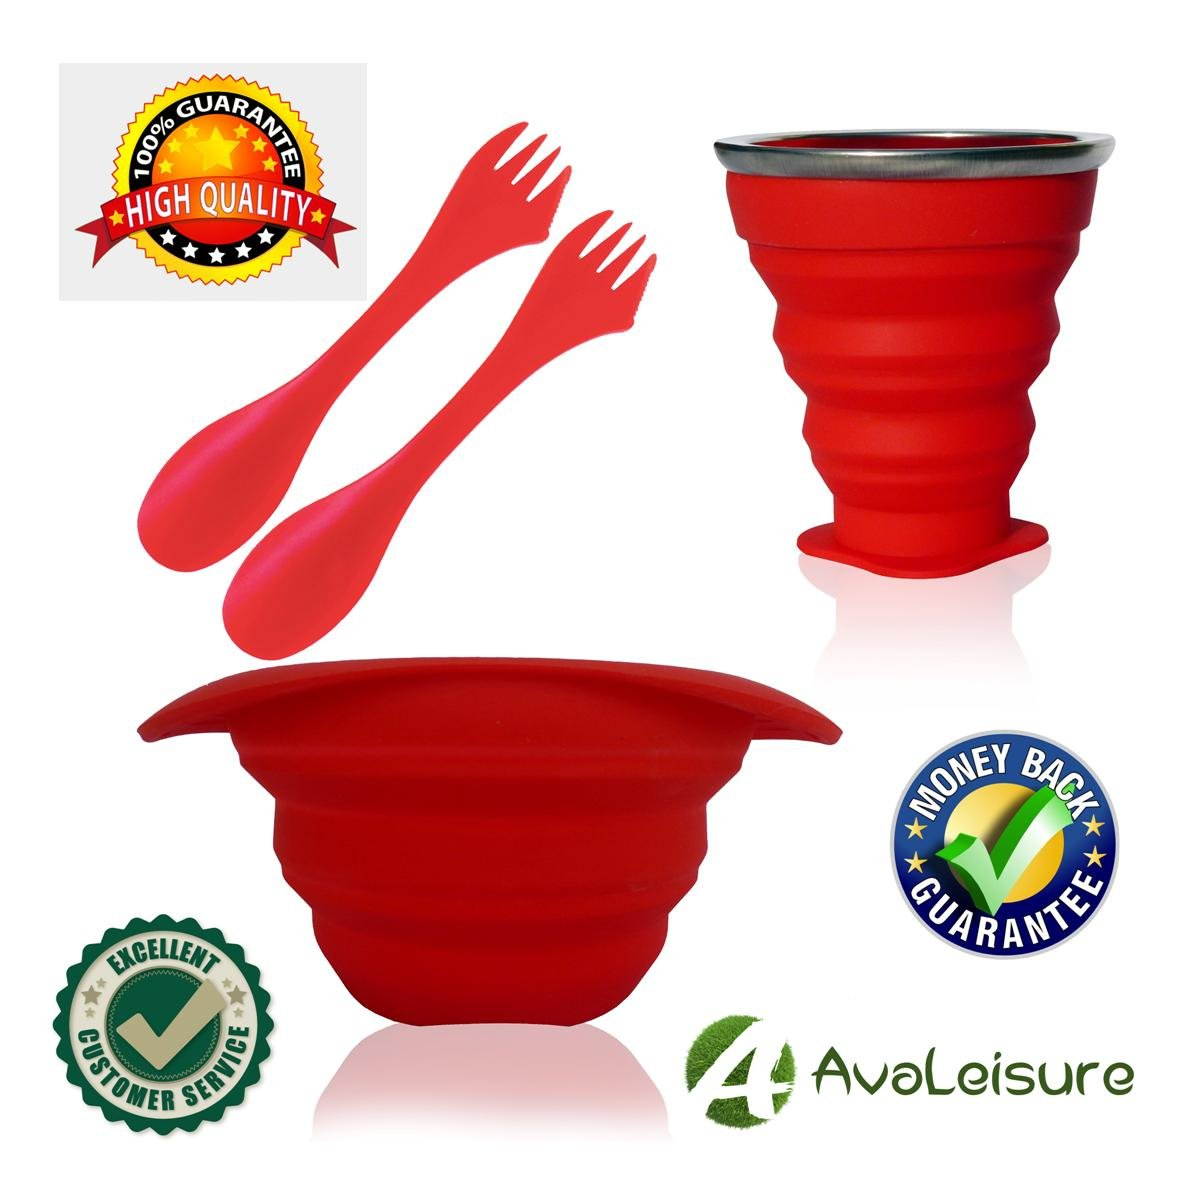 AVALEISURE COLLAPSIBLE SILICONE TRAVEL CUP- the Genuine 10oz Foldable Drinking Mug with Lid, BPA Free, Water, Coffee, Tea & Snacks for Hiking, Camping, Picnic & Commuting to Work by AVALEISURE (Image #9)